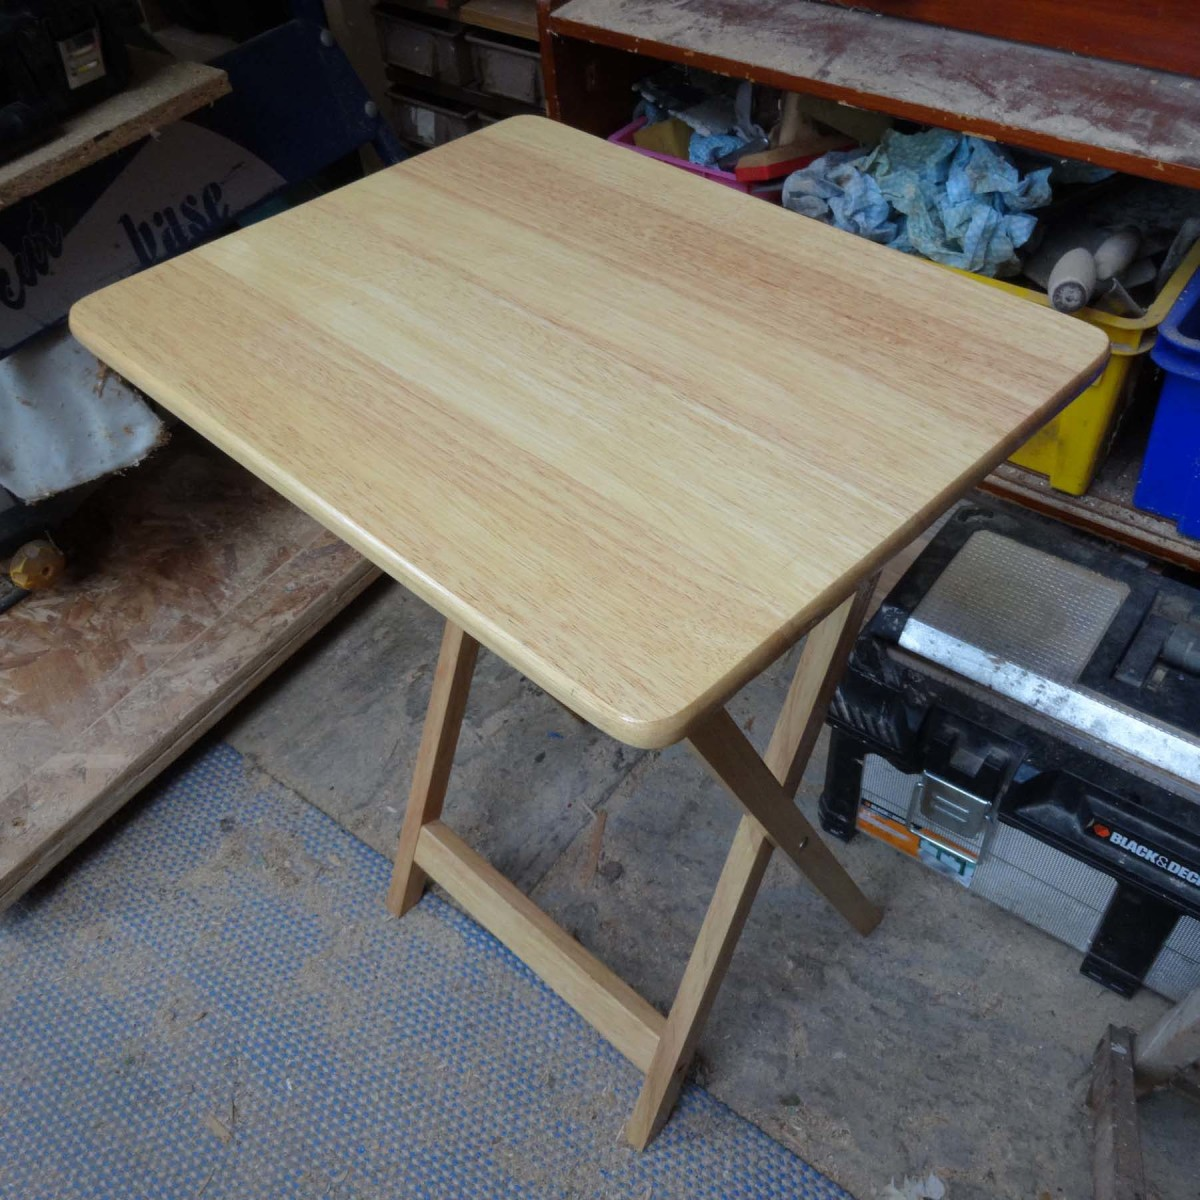 Making a Folding Table Stable